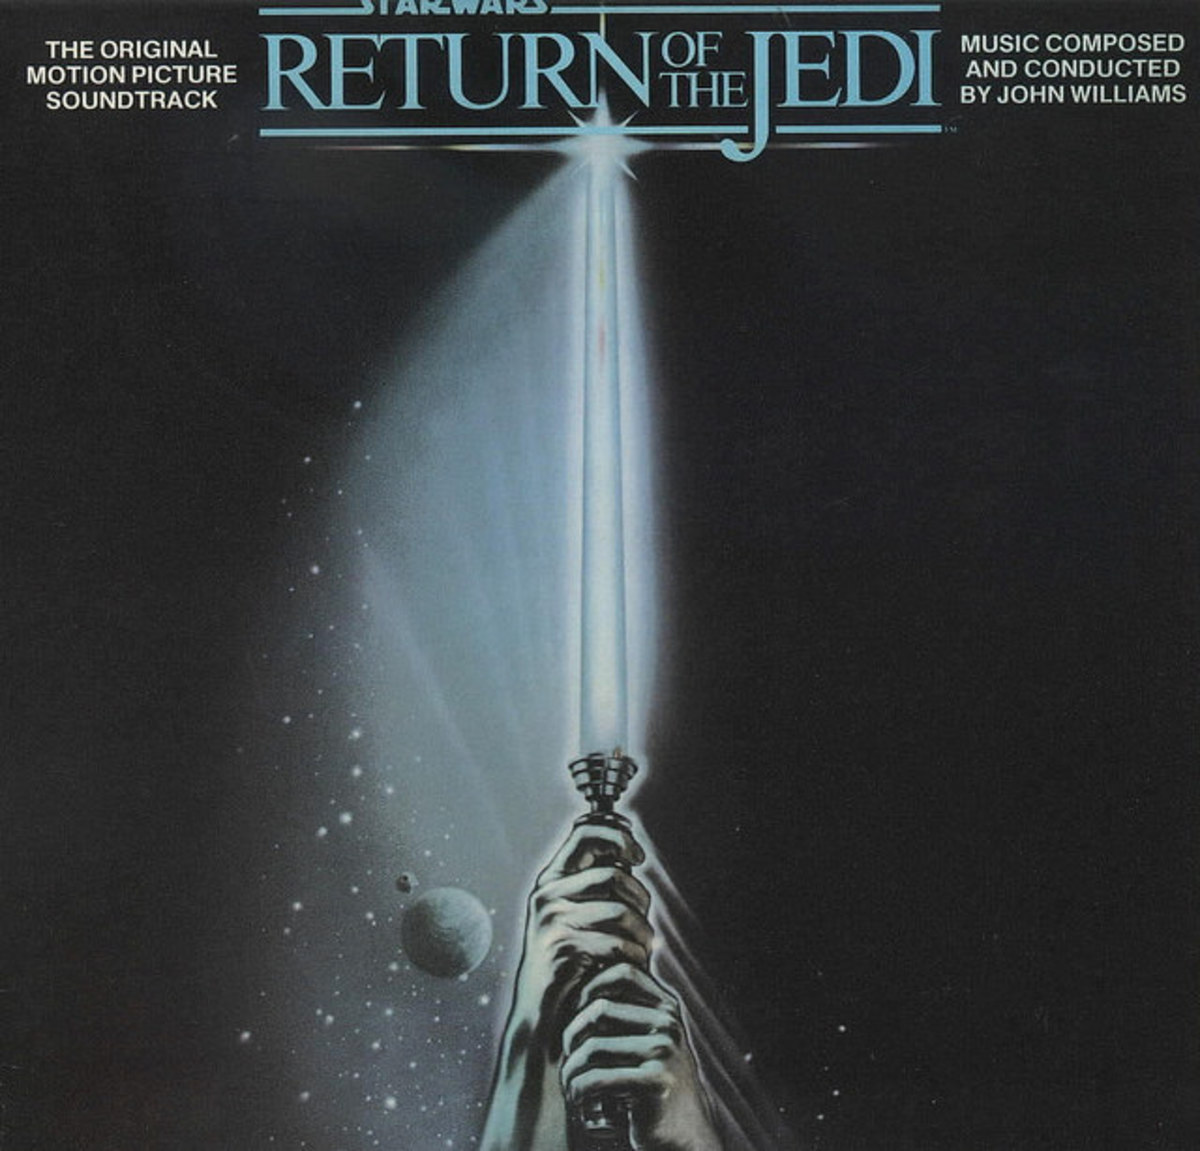 "Star Wars ""The Empire Strikes Back ""RSO Records 422-811767-1 12"" LP Vinyl Record, US Pressing (1983) John Williams Conducts the London Symphony Orchestra"